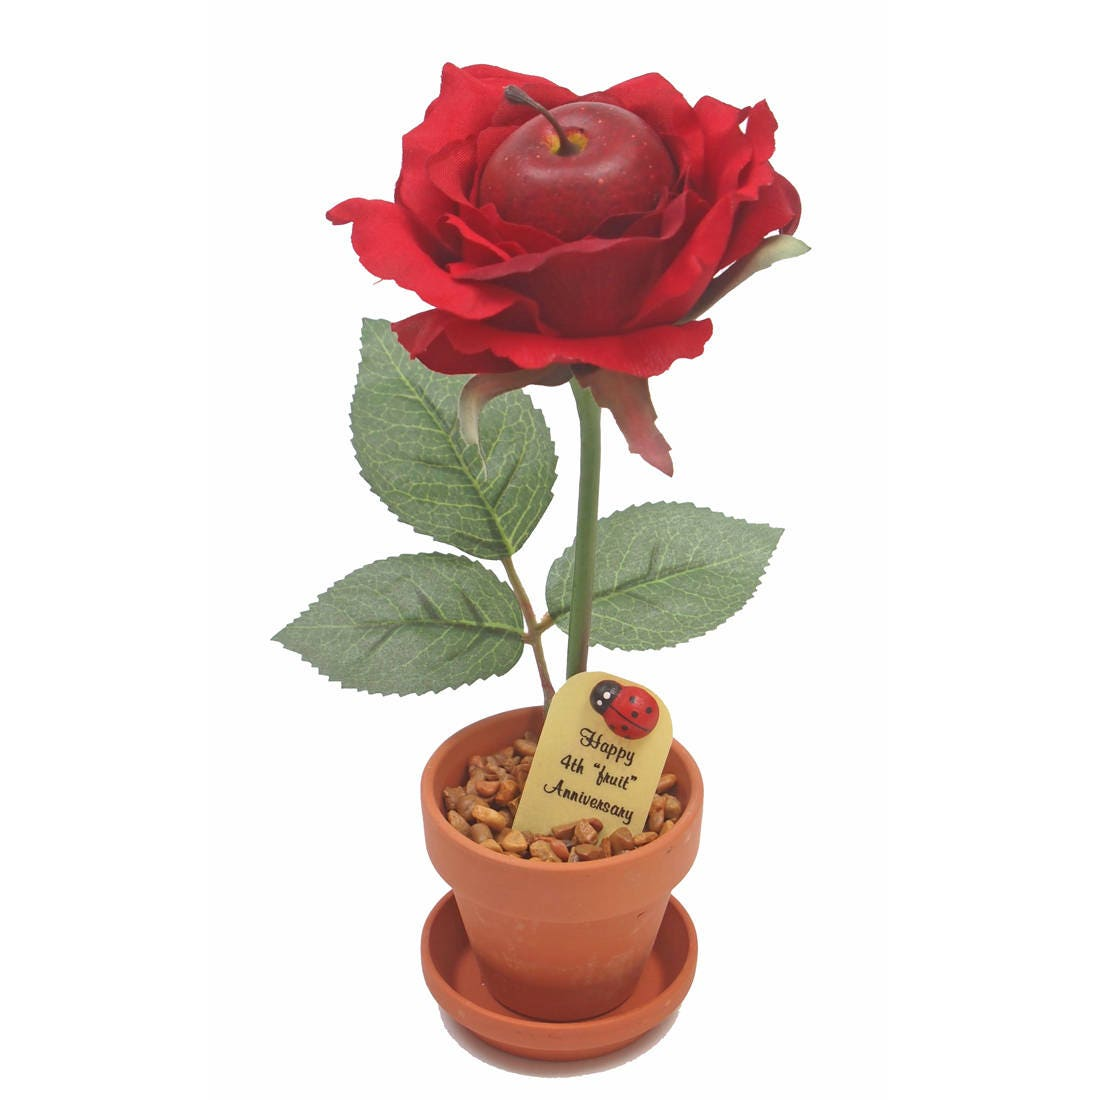 What Is 4th Wedding Anniversary Gift: 4th Anniversary Gift Fruit Rose